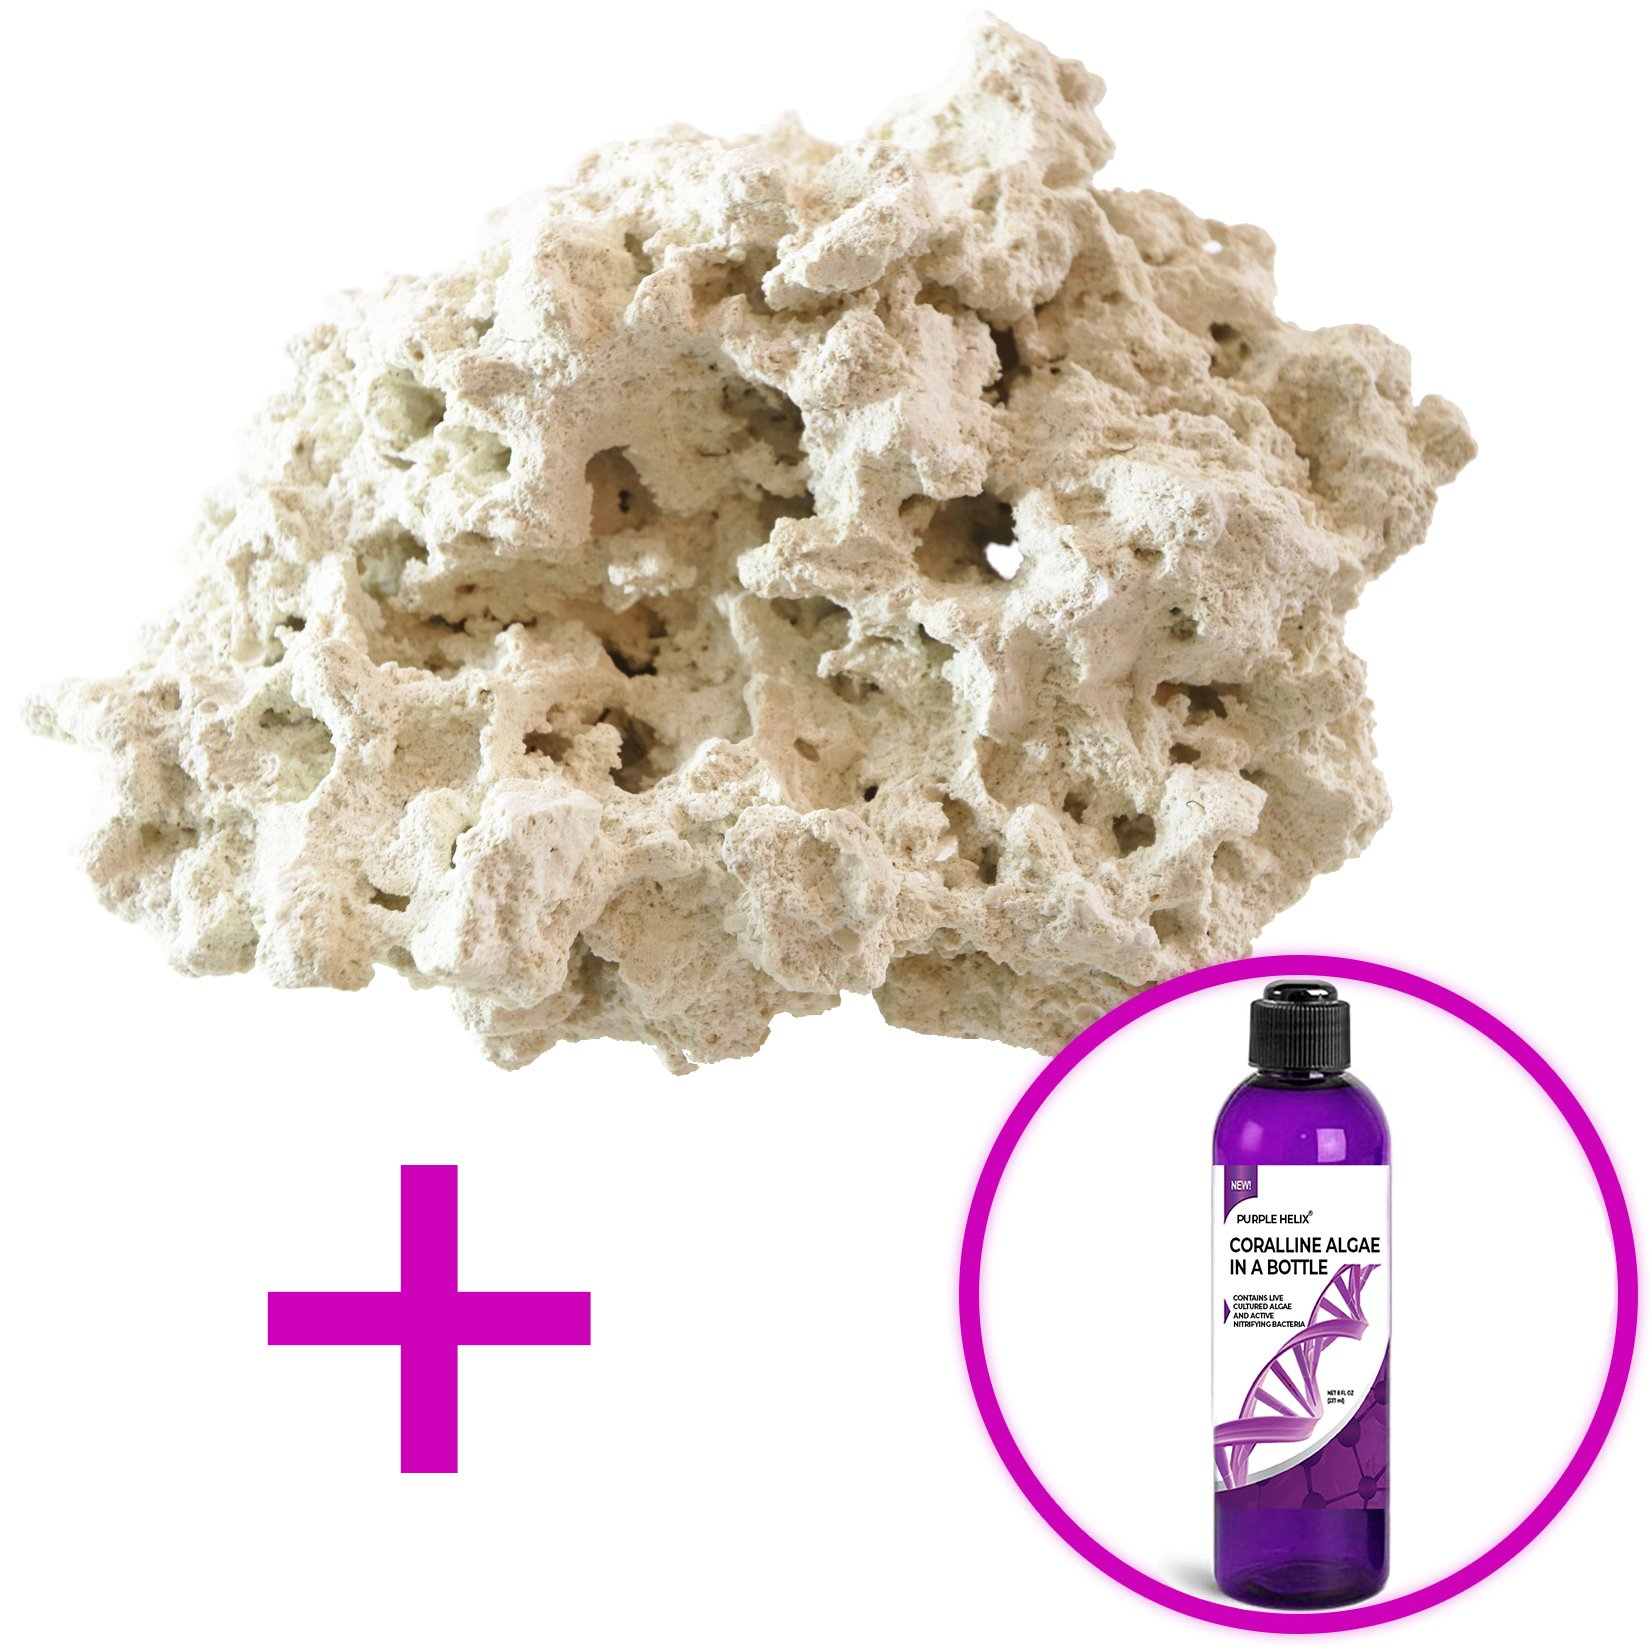 ARC Reef Dry Base Rock with Coralline Algae Spores for Seeding Saltwater Aquariums, 25 lbs. by ARC Reef